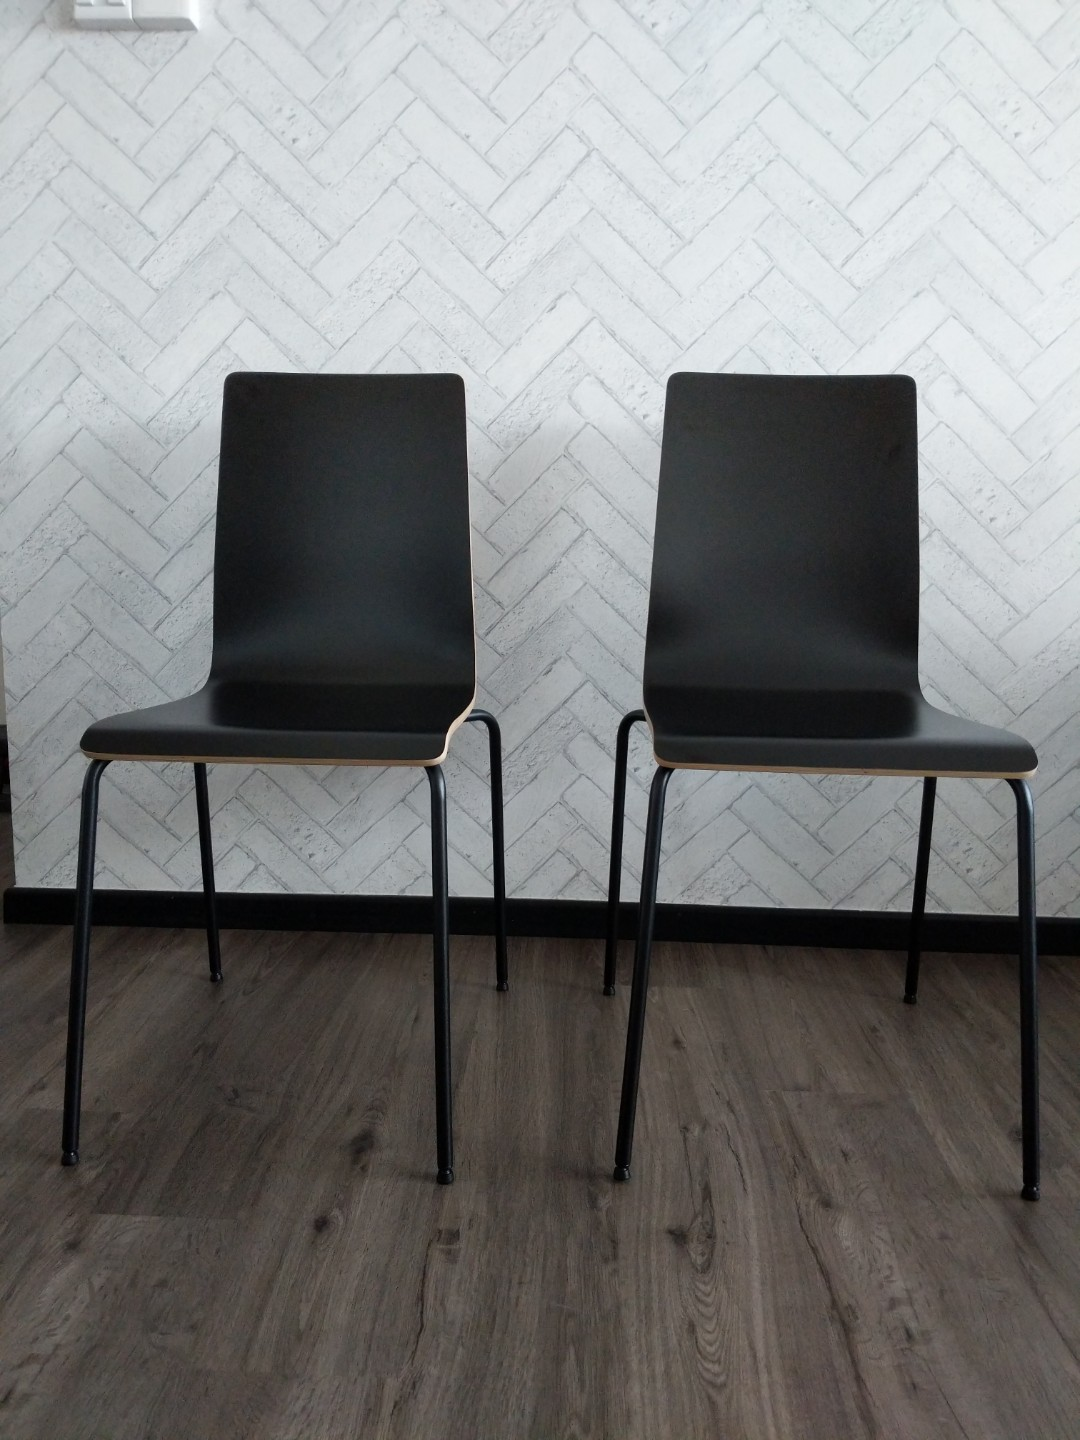 Martin chairs in black